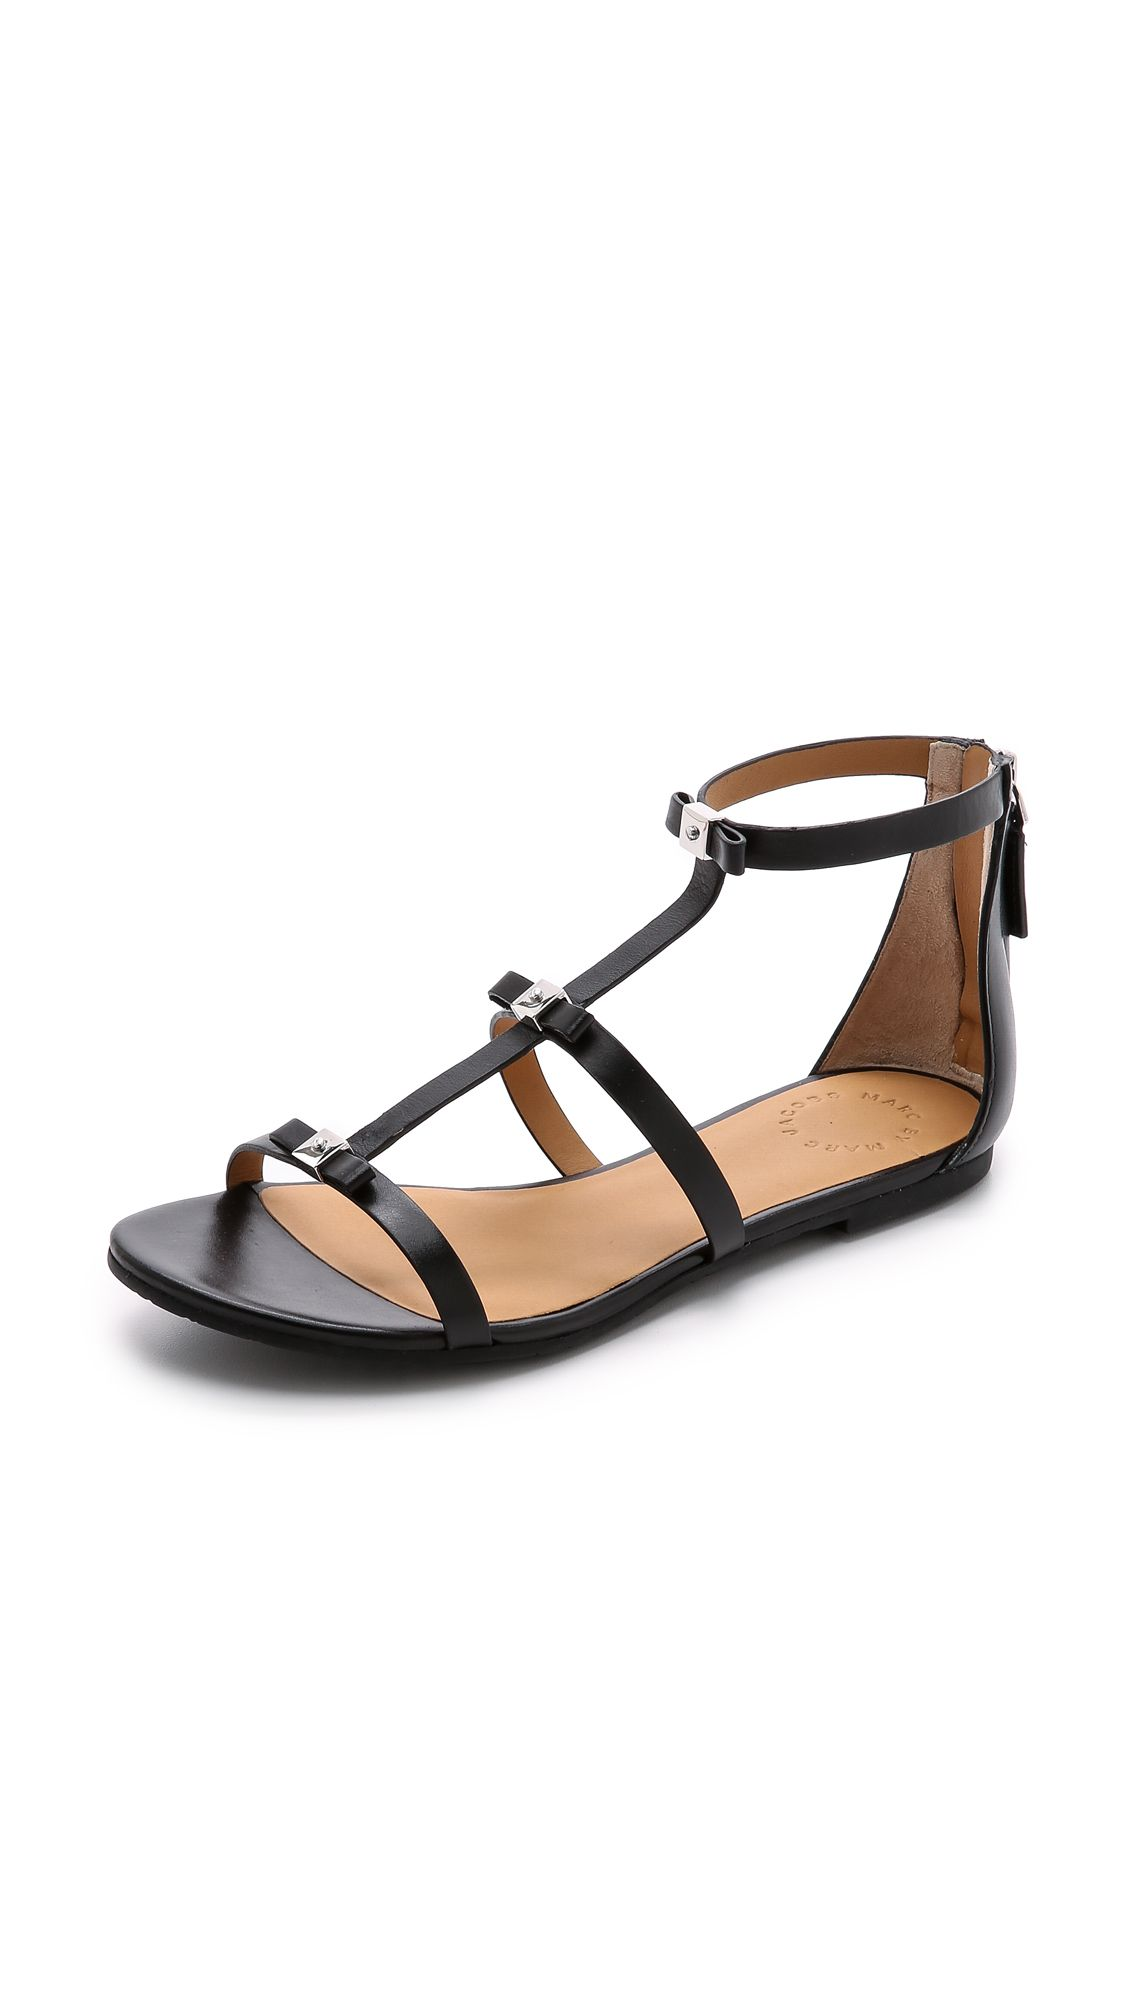 Buy Cheap Footlocker Marc Jacobs CUBE BOW SANDAL women's Sandals in Best Wholesale Cheap Online Buy Cheap Visit New jAHwjqB9